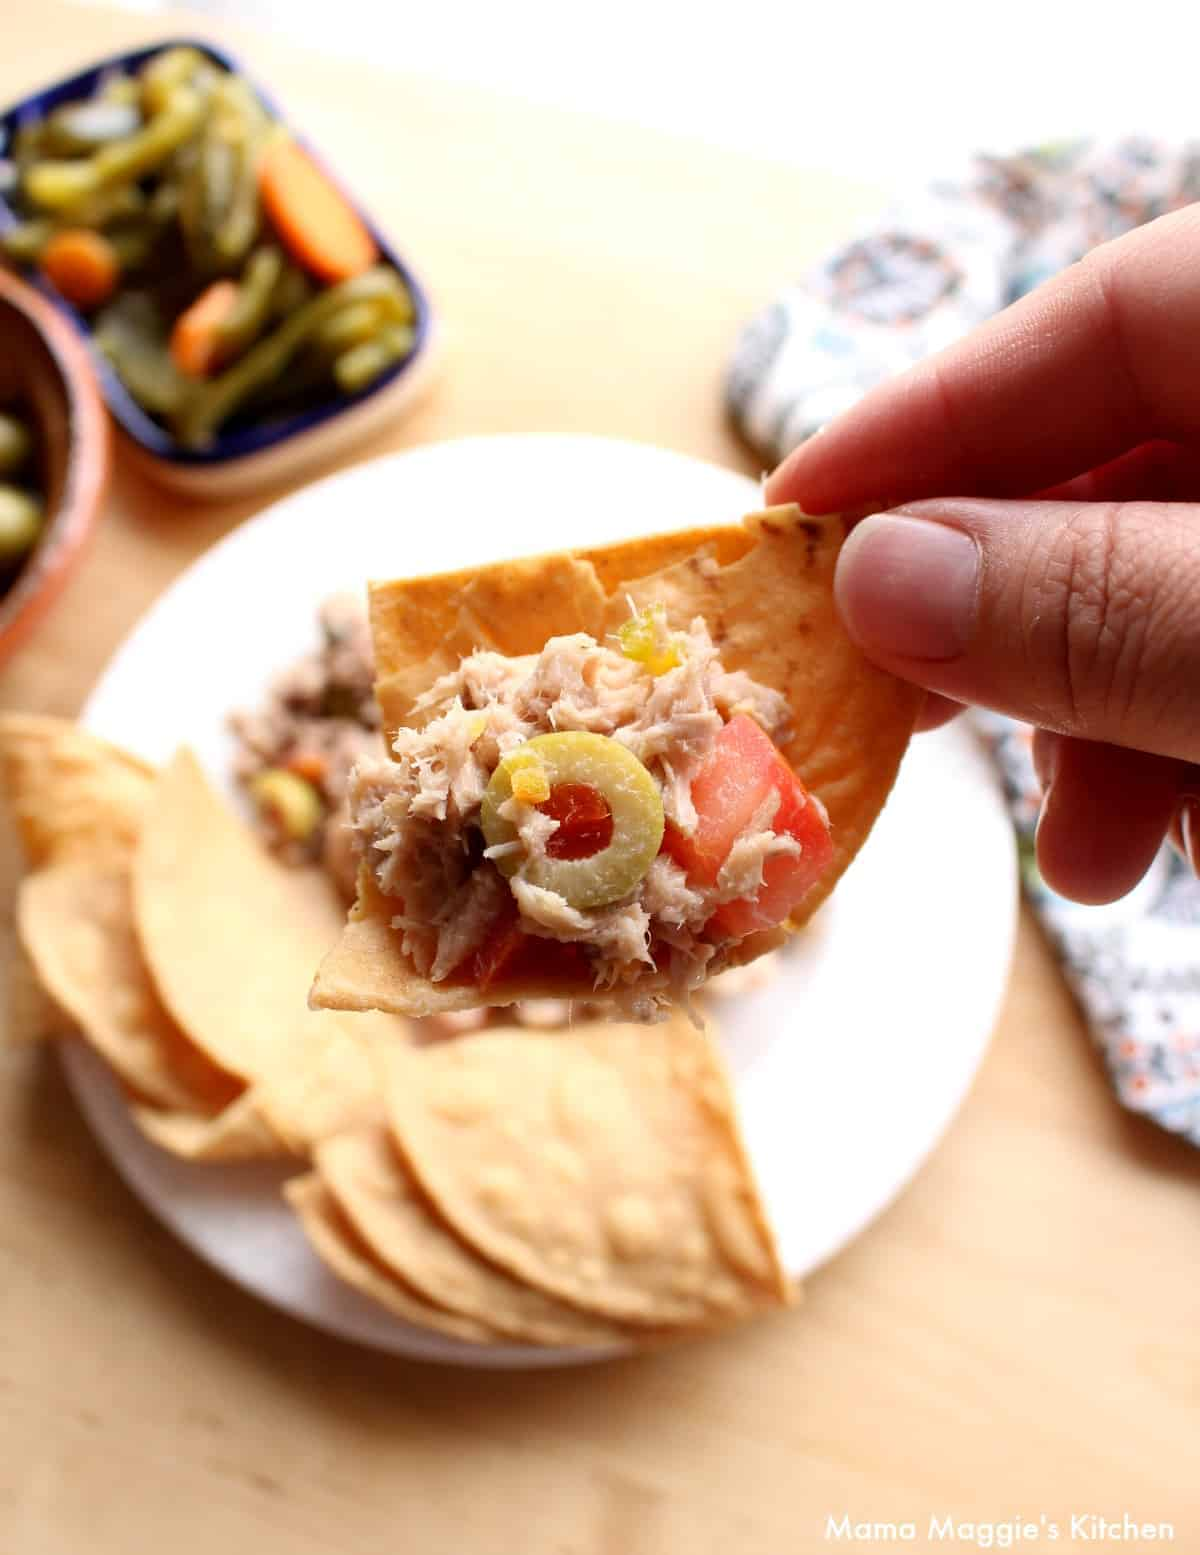 A hand holding a chip with Atun a la Veracruzana on it.